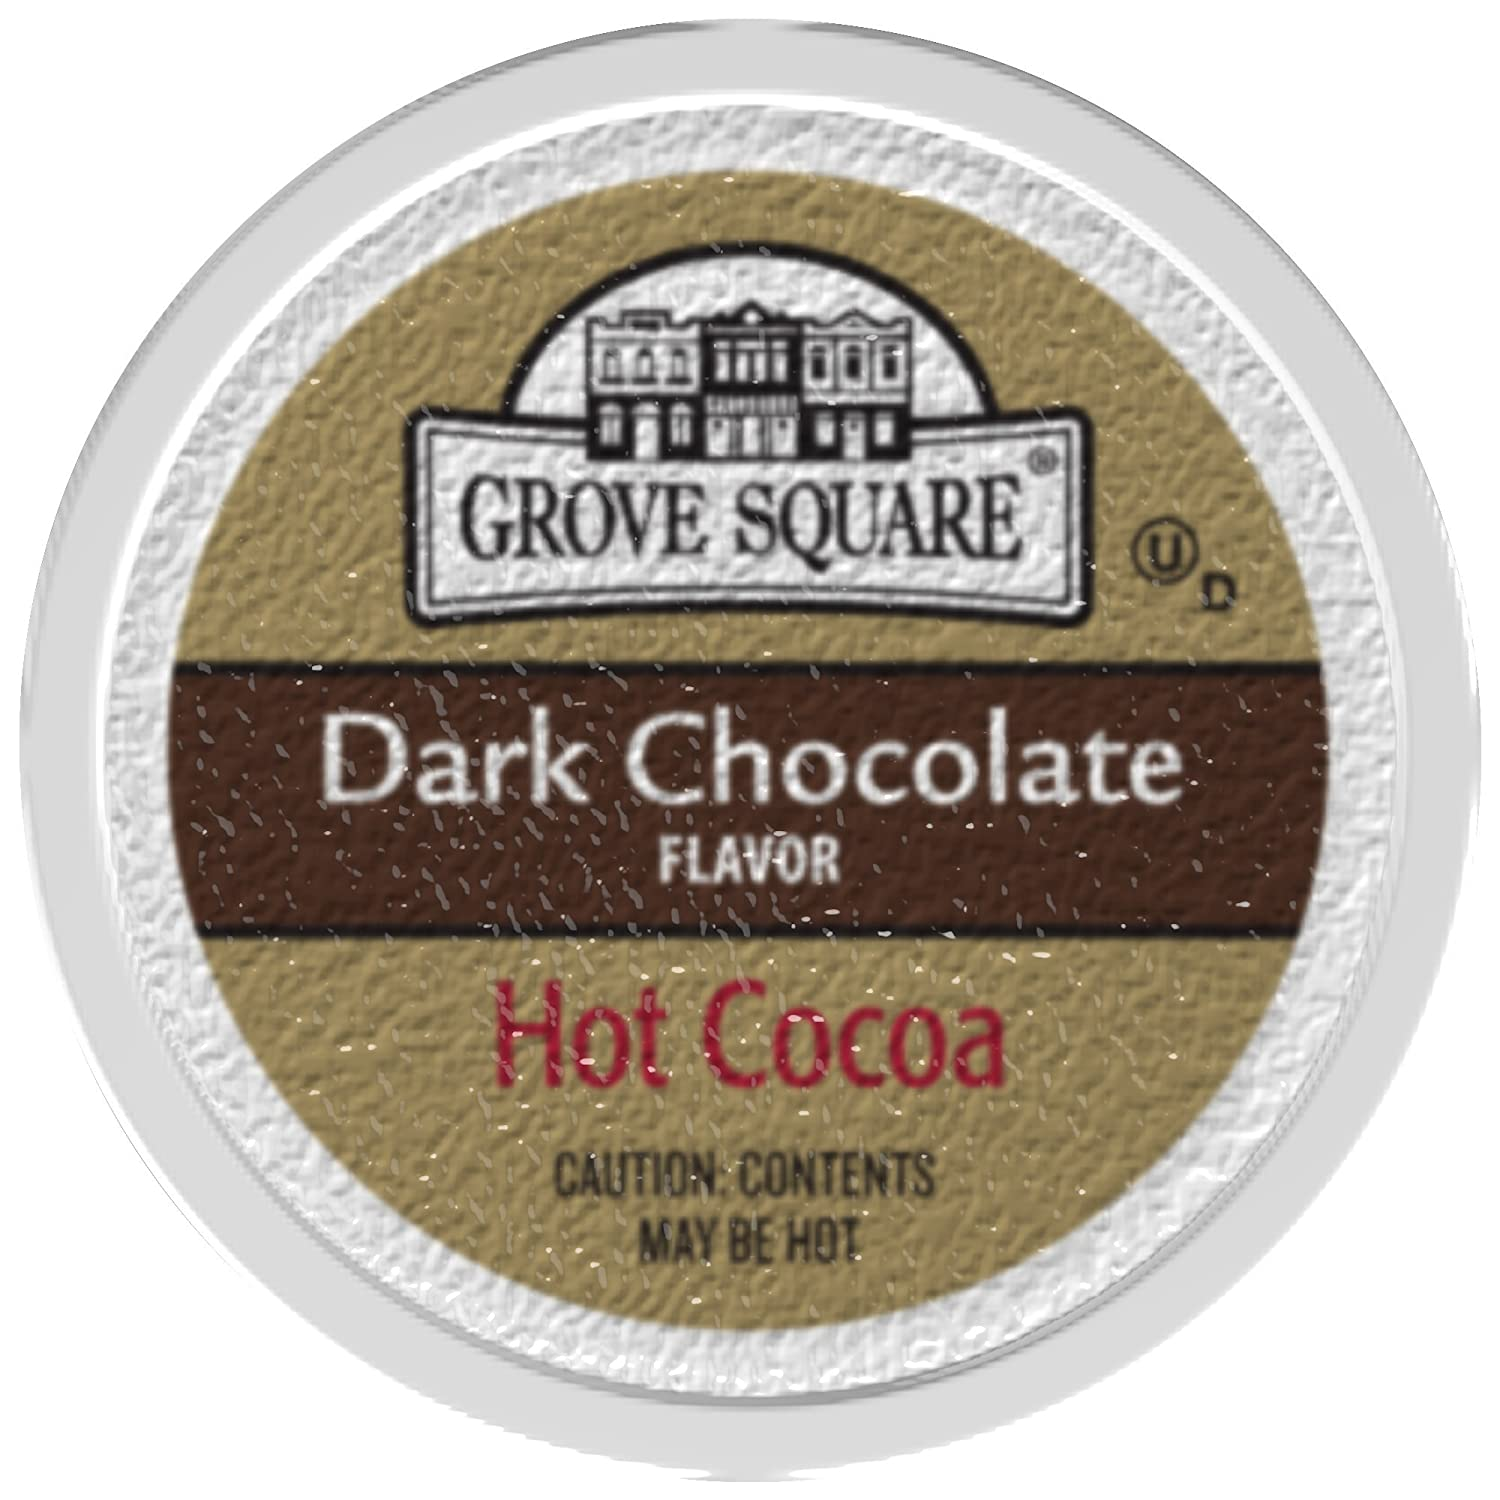 Amazon.com : Grove Square Hot Cocoa, Dark Chocolate, 24 Single ...